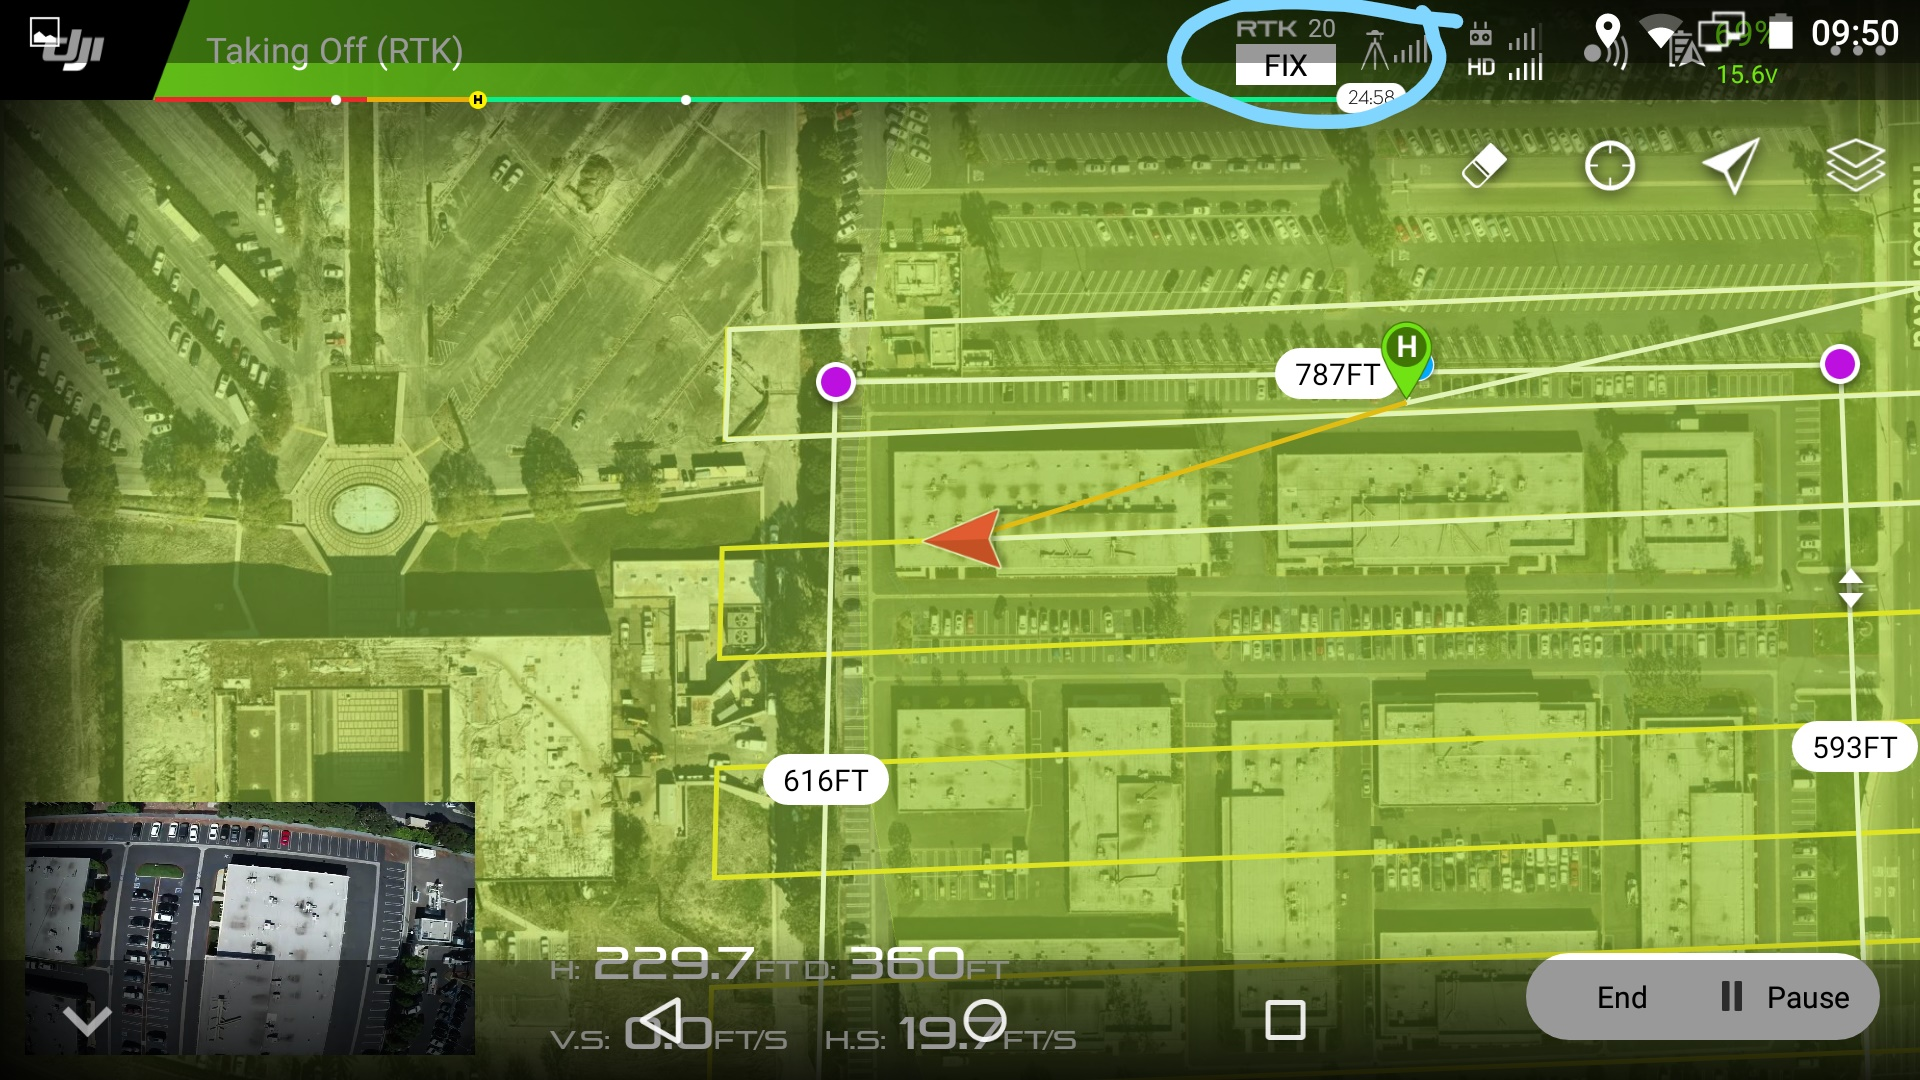 RTK Fix status should remain on and connected throughout flight.